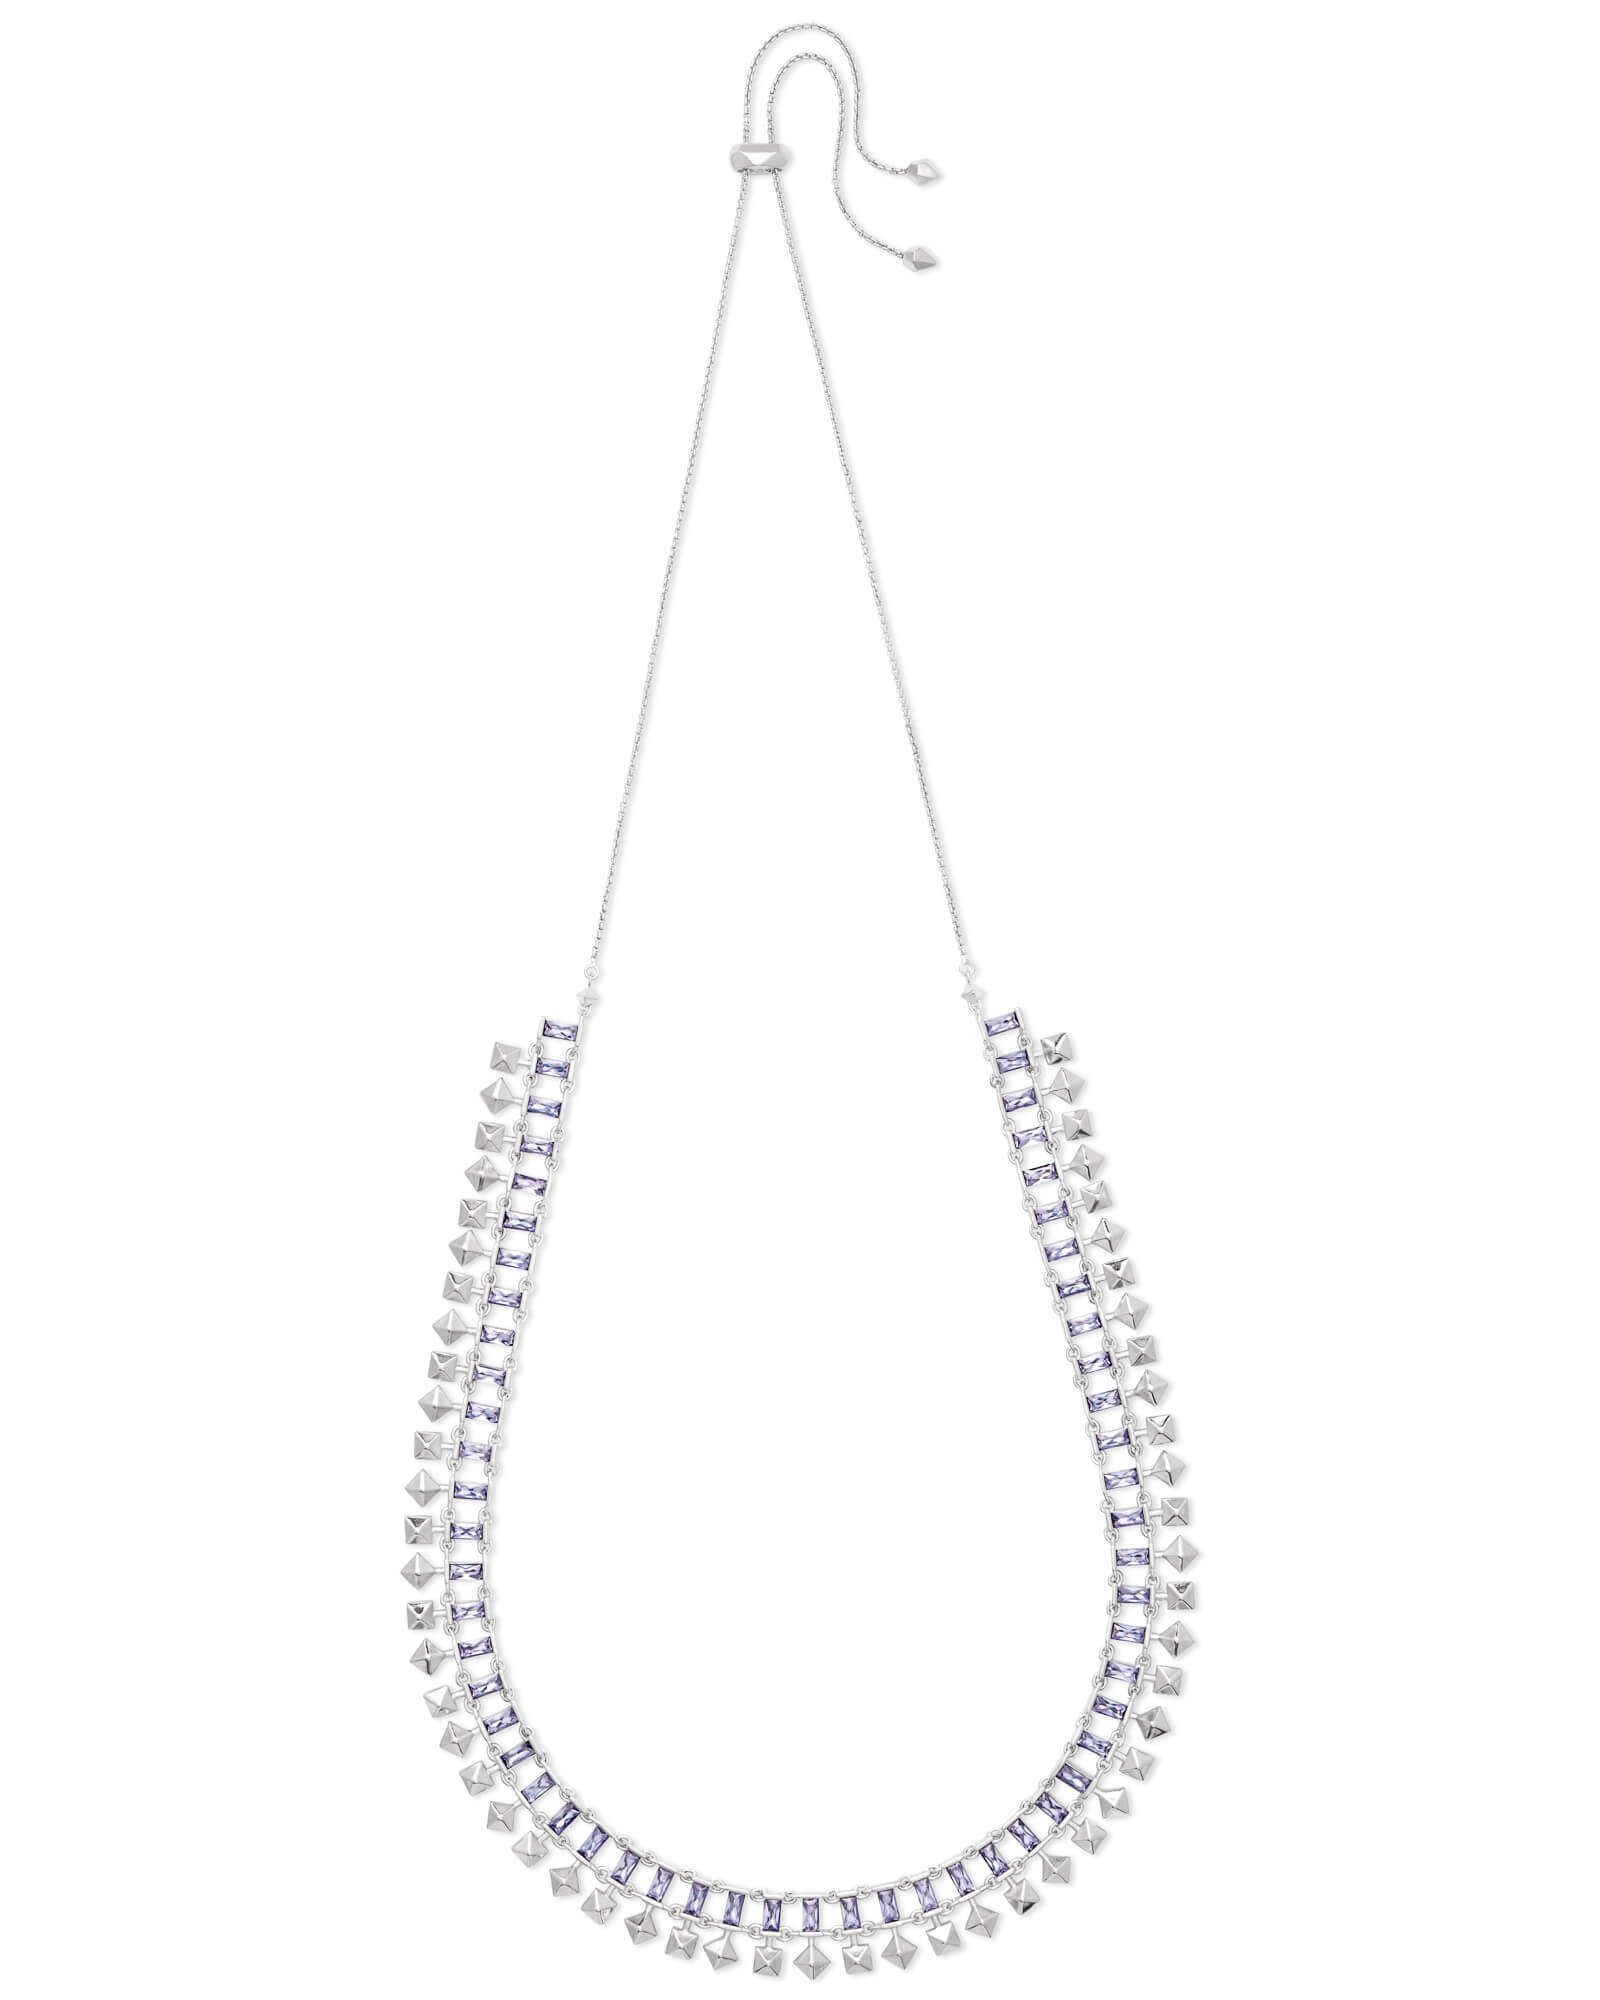 Oscar Silver Choker Necklace in Lilac Crystal